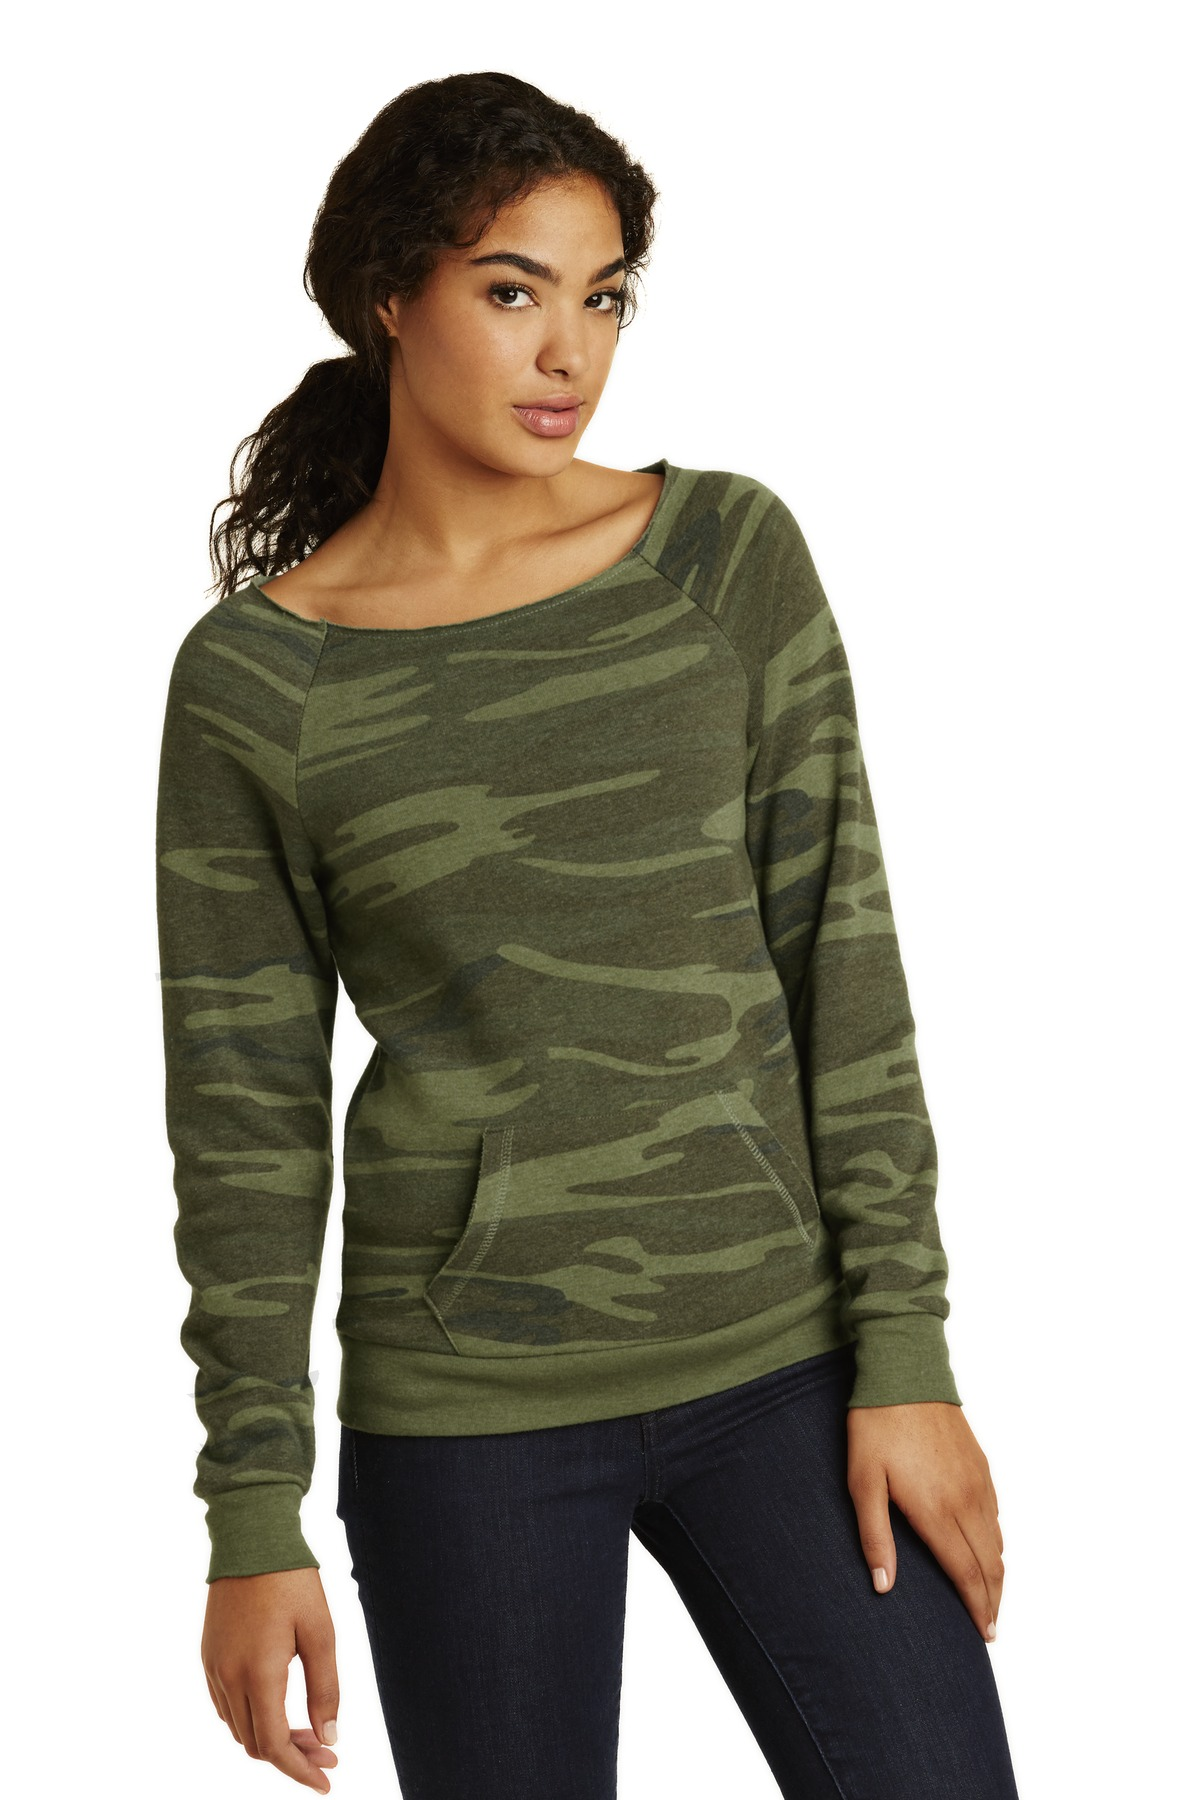 Alternative Women's Maniac Eco ™  -Fleece Sweatshirt. AA9582 - Camo